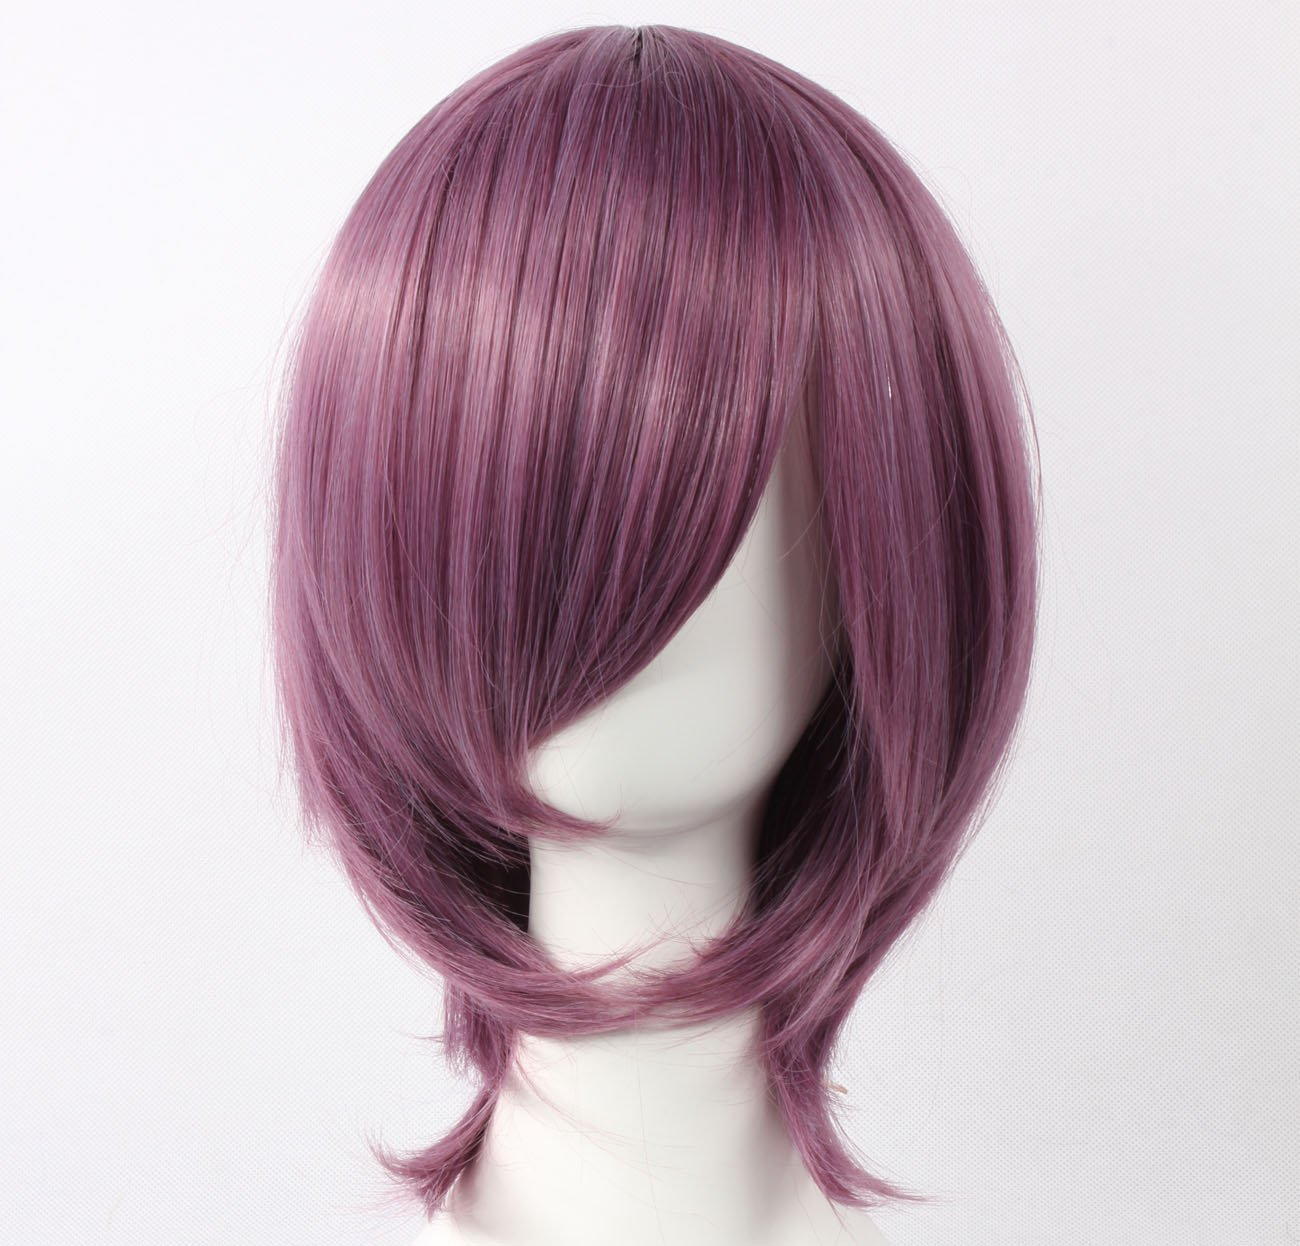 Coolsky Wig Dark Purple Wig Short Dark Purple Straight Wig Wigs